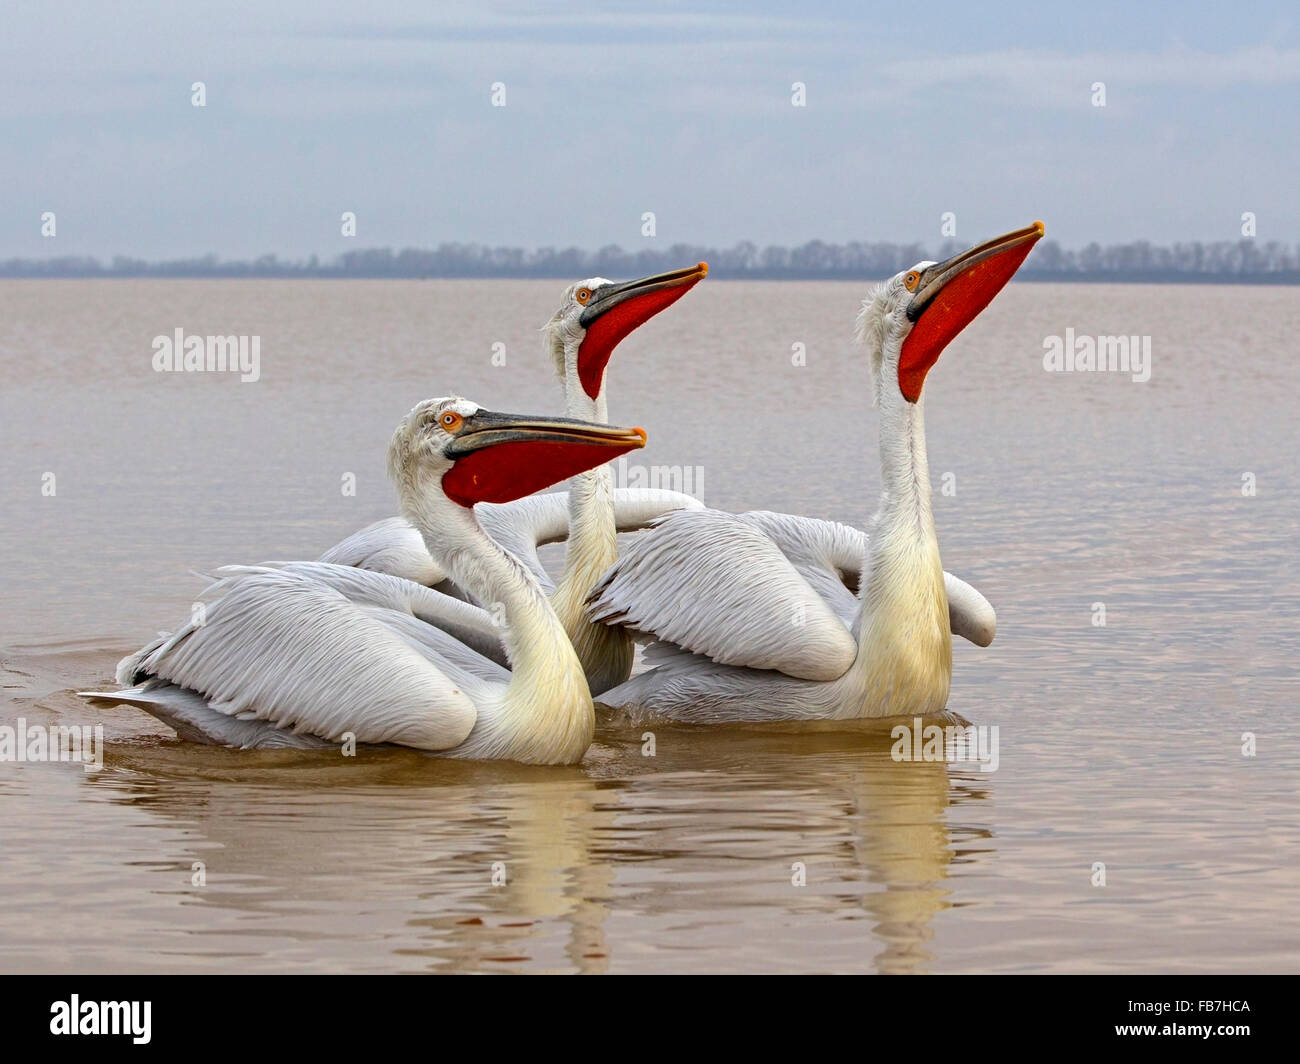 Three dalmatian pelican swimming with beaks raised - Stock Image